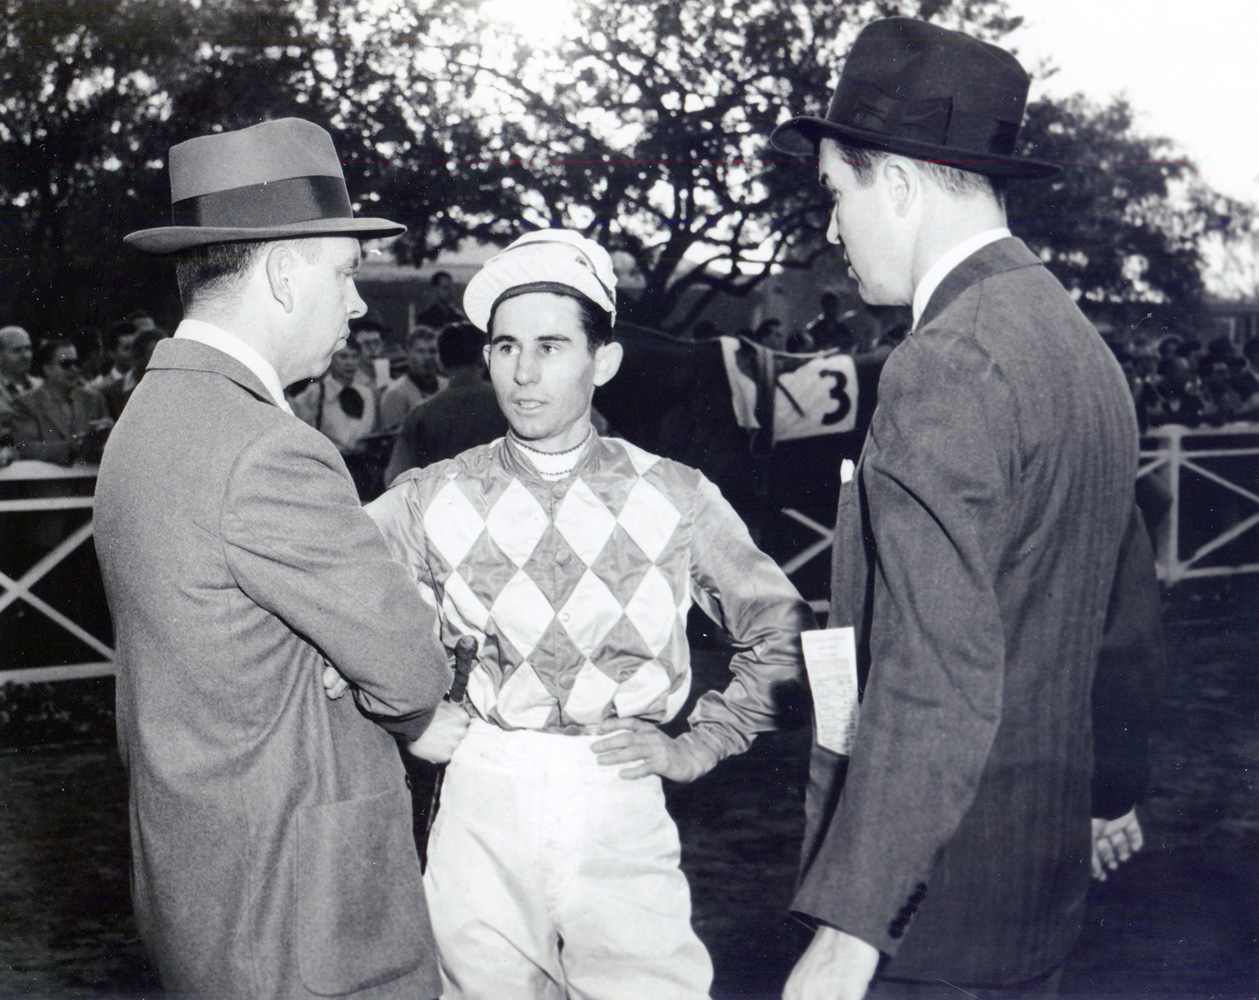 Trainer William C. Winfrey, jockey Eric Guerin, and owner Alfred G. Vanderbilt II in the Santa Anita paddock, circa 1952 (Bill Mochon/Museum Collection)